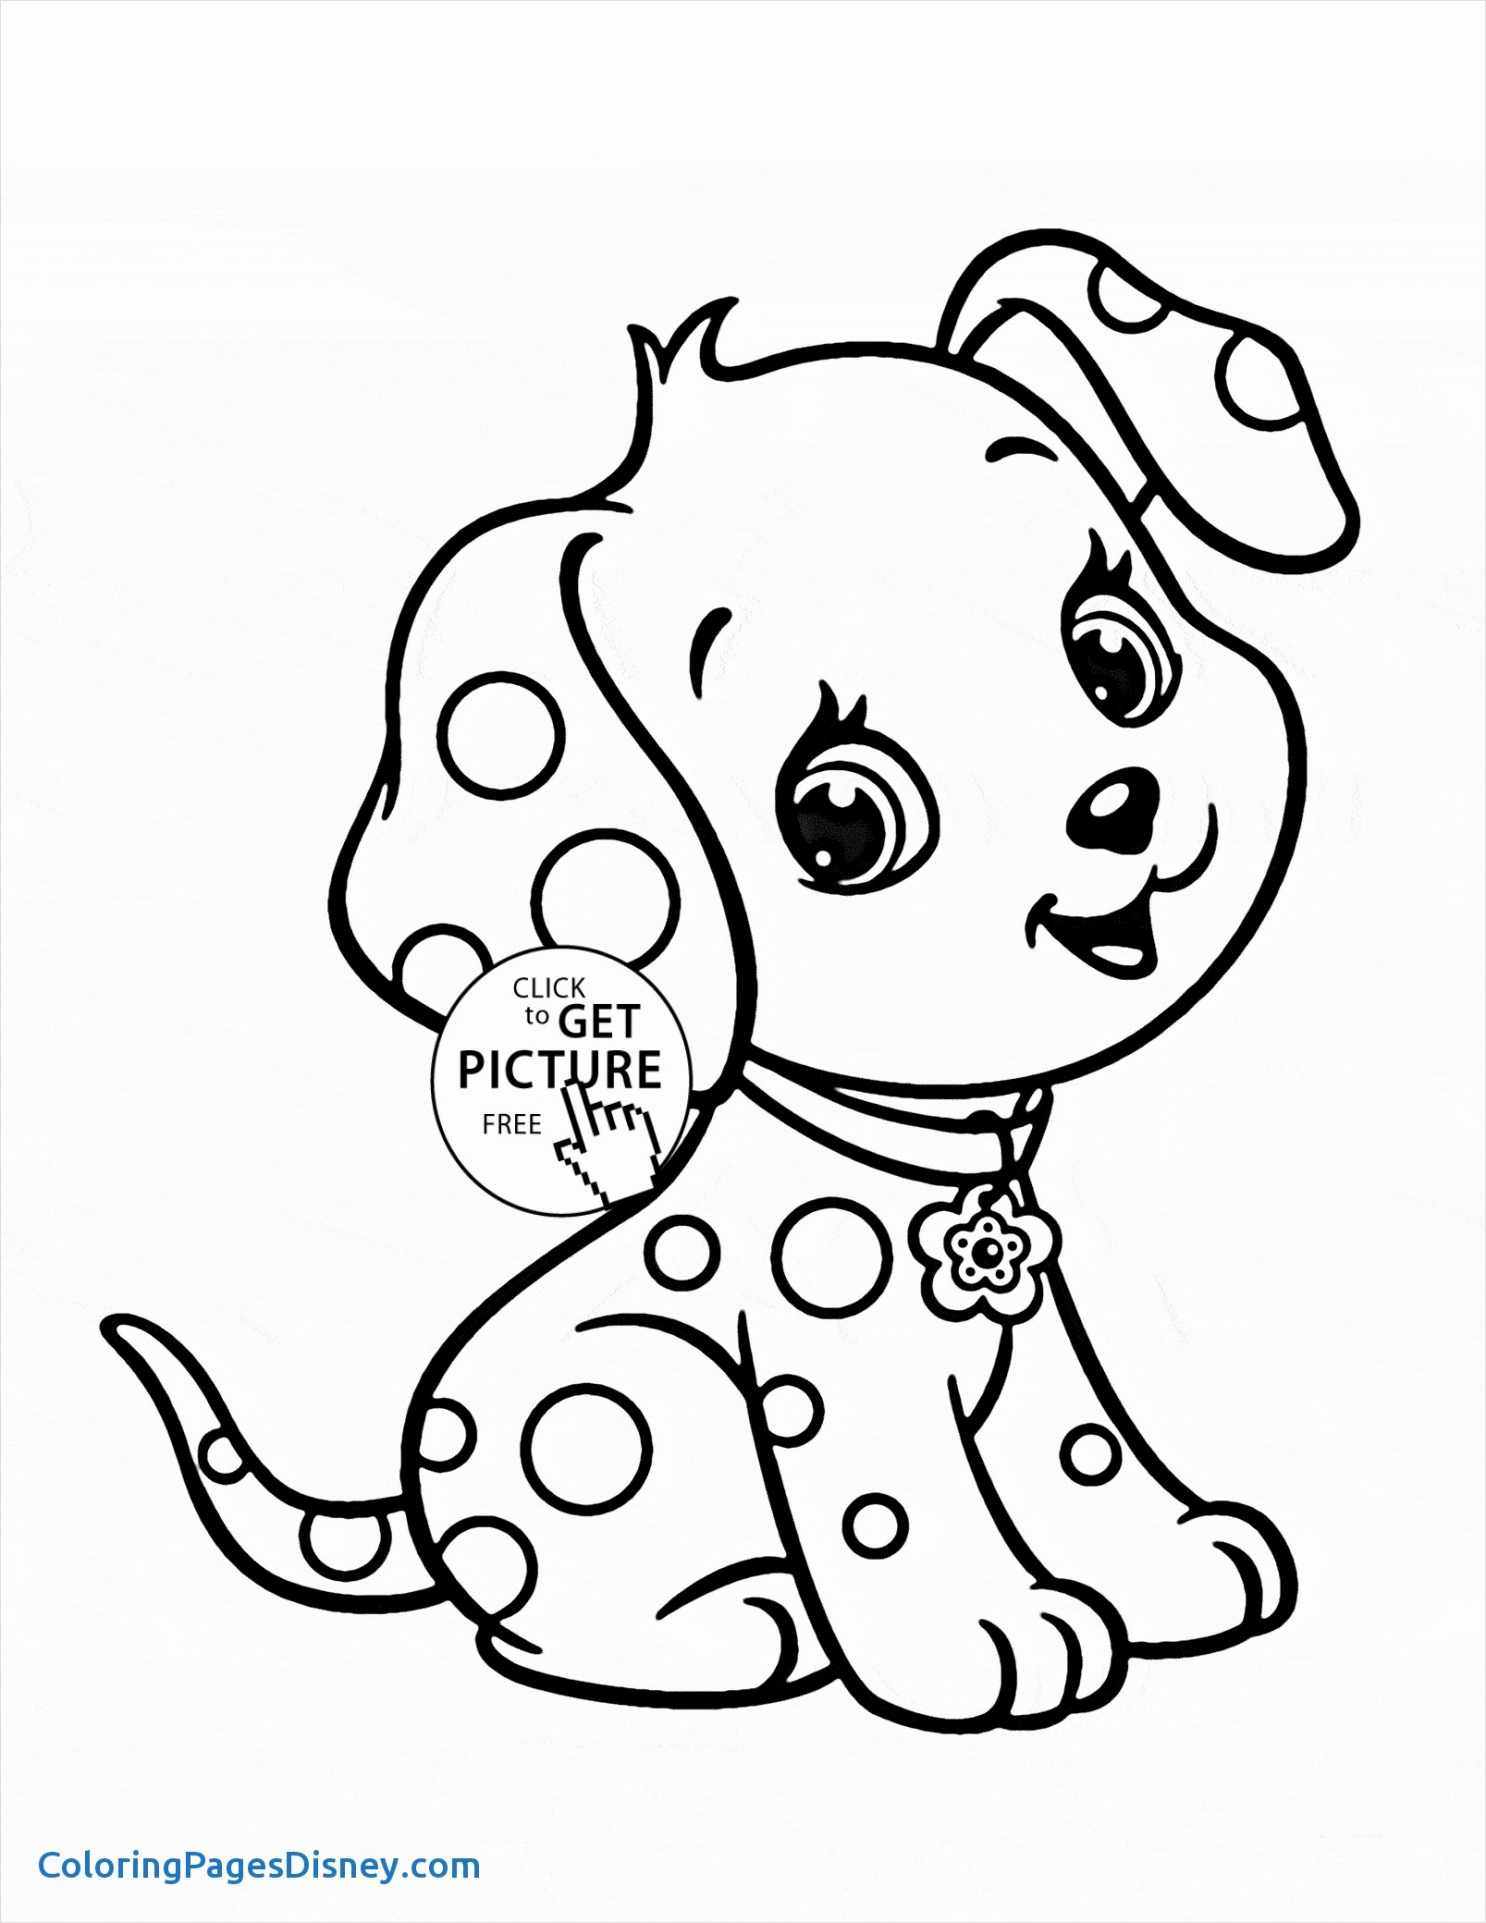 Coloring Worksheets for Preschool and Cool 50 Beautiful Picture Find Printable – Coloring Sheets for Kids